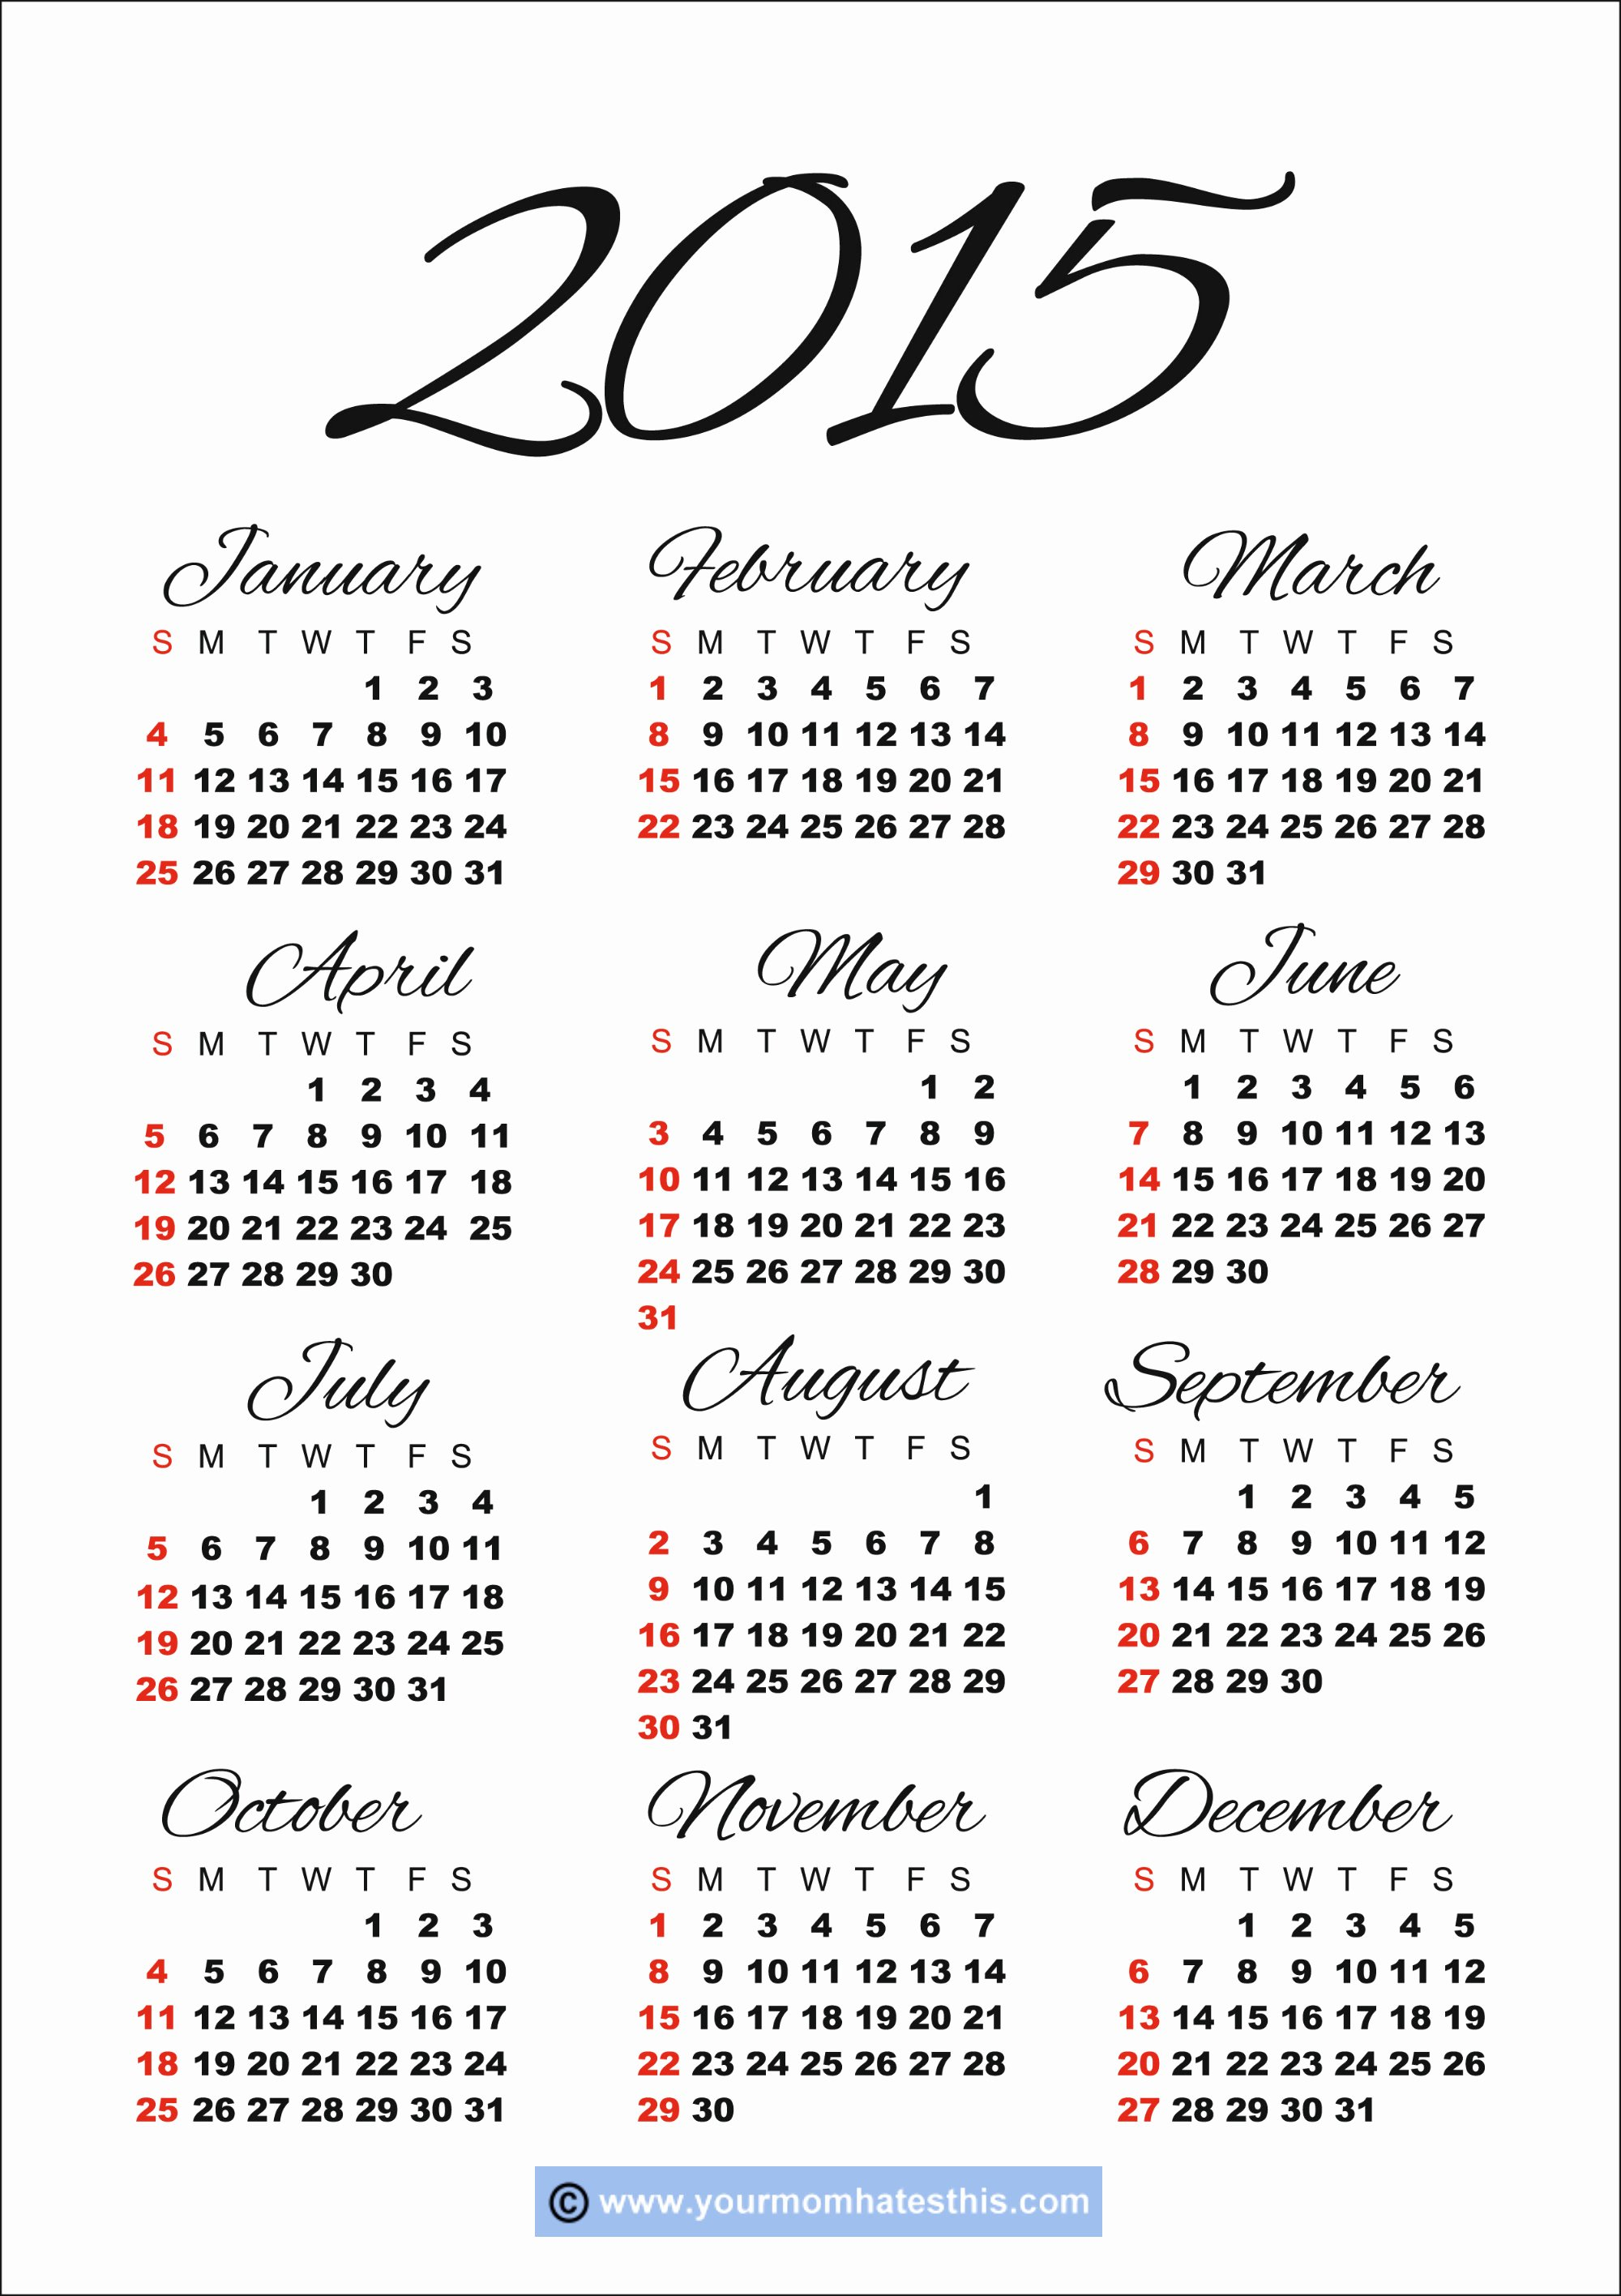 Vacation Calendar Template 2015 Lovely Get Your 2014 Us Calendar Printed today with Holidays